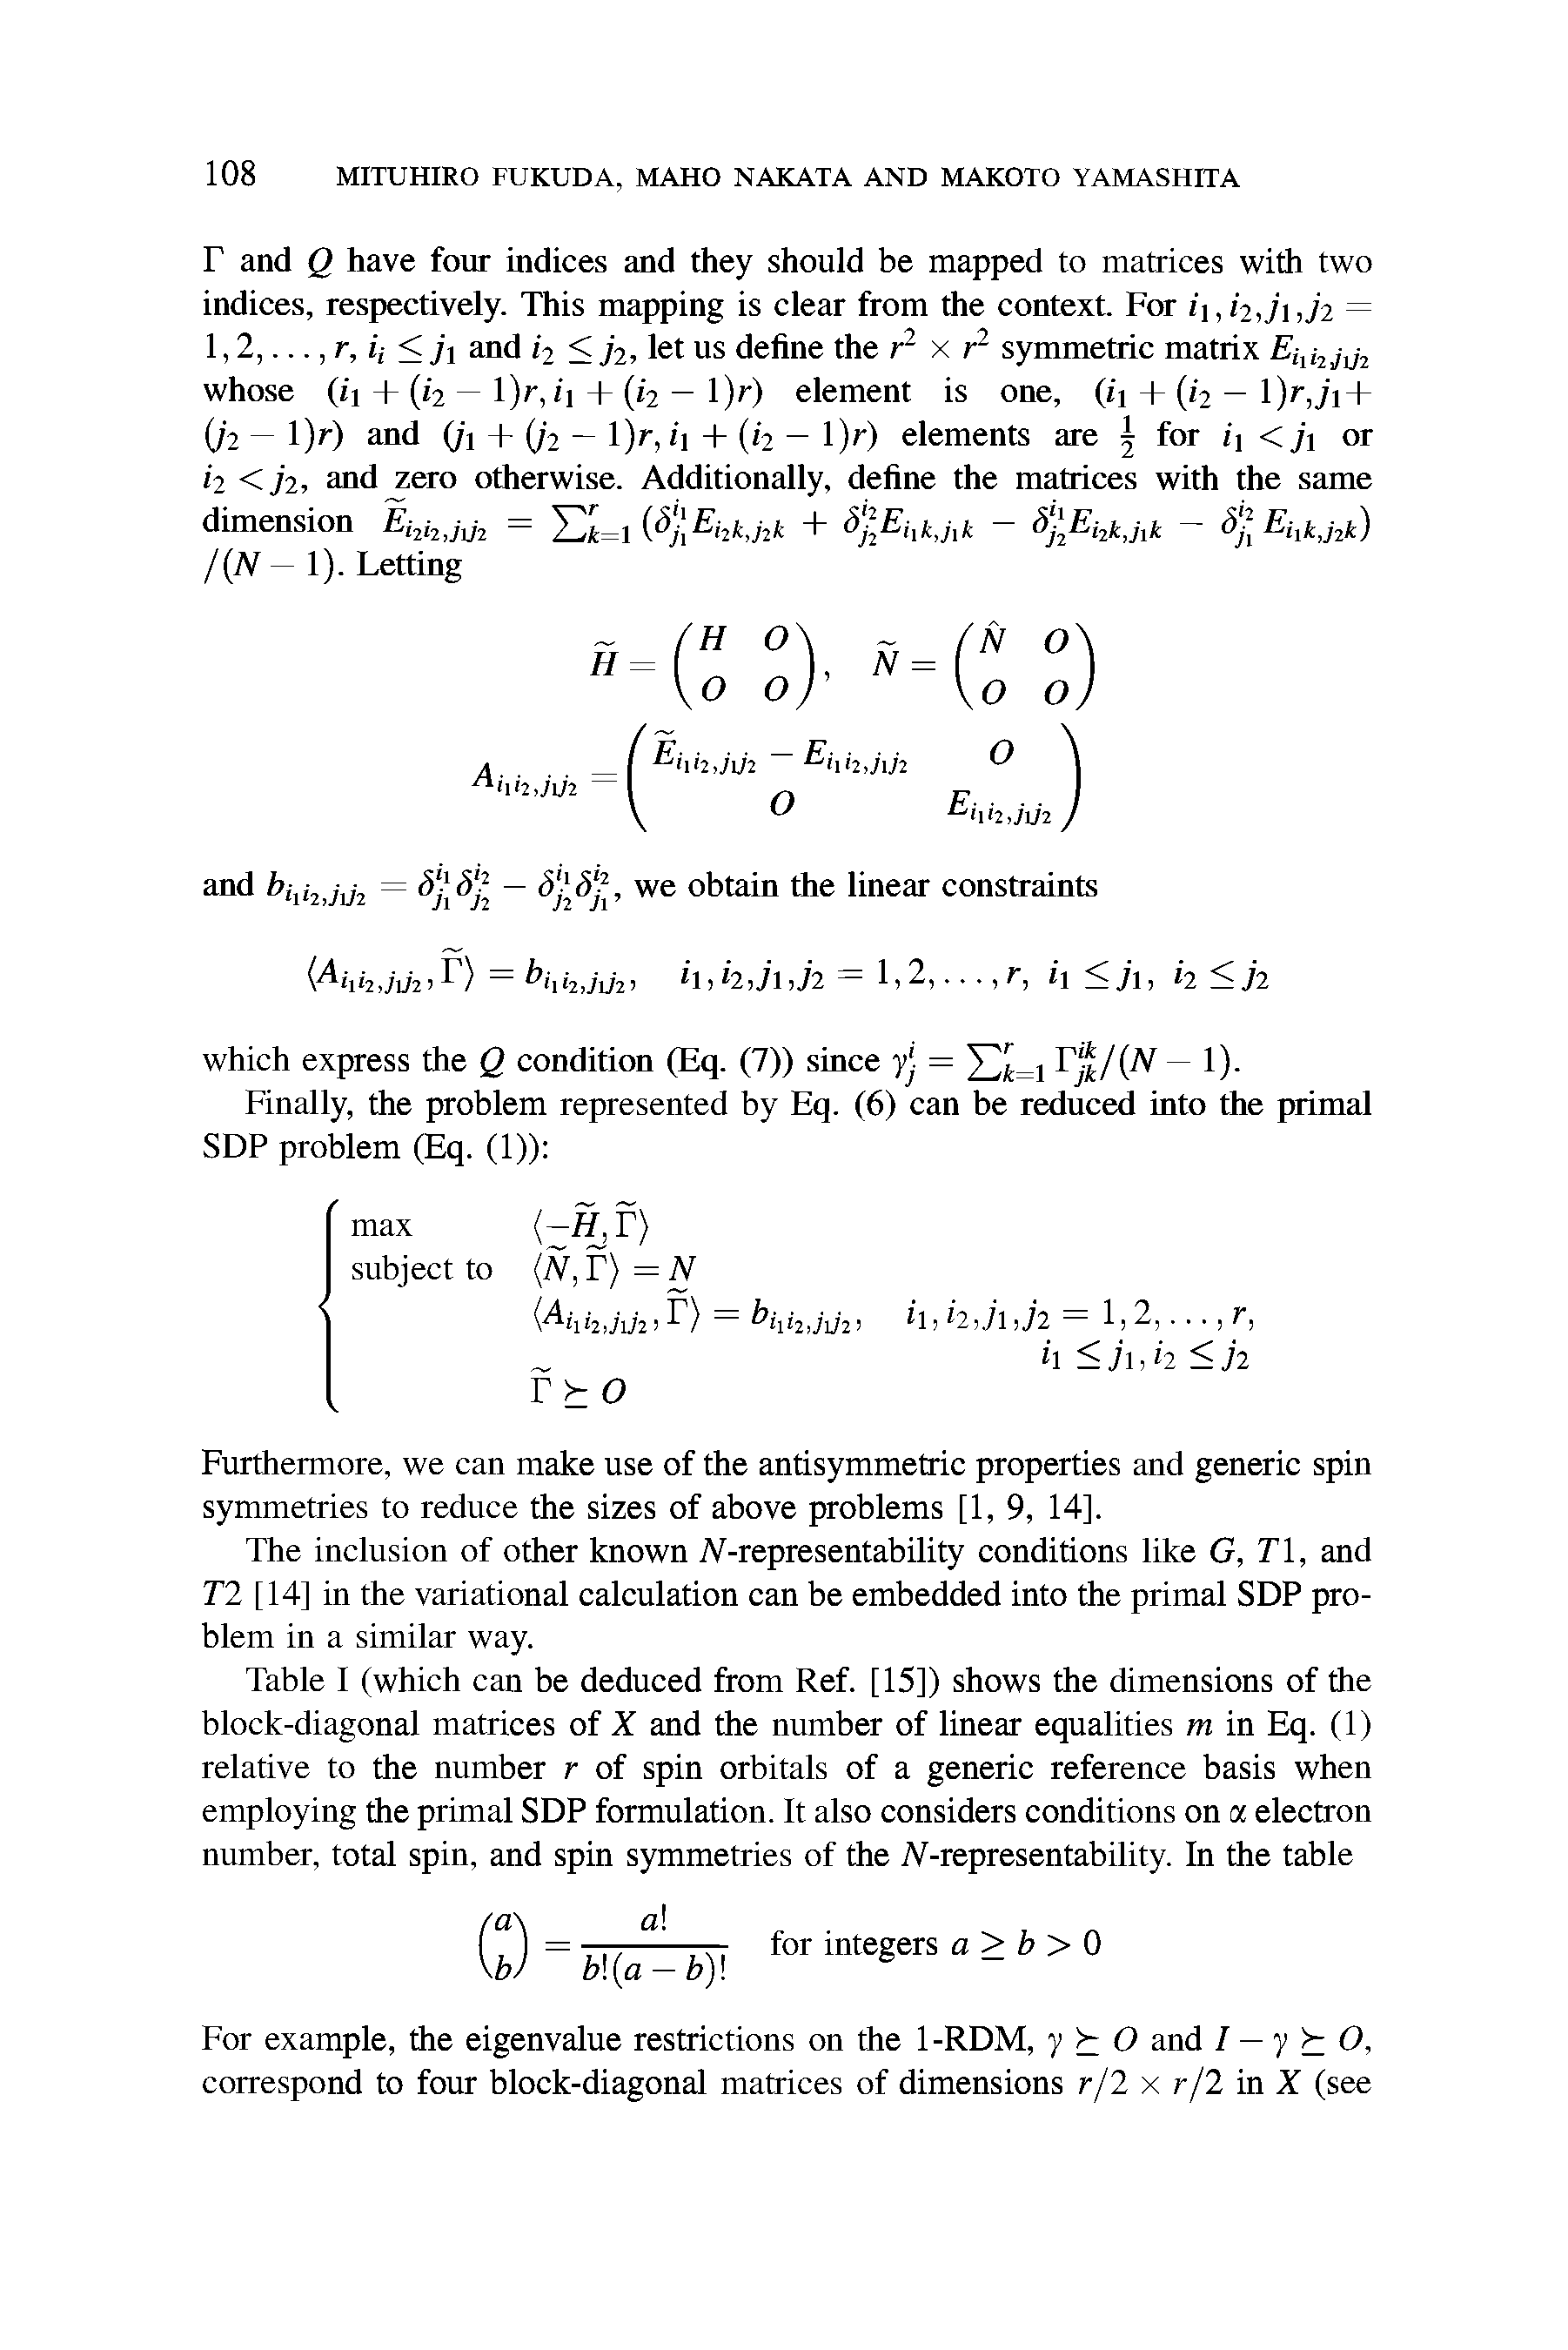 Table I (which can be deduced from Ref. [15]) shows the dimensions of the block-diagonal matrices of X and the number of linear equalities m in Eq. (1) relative to the number r of spin orbitals of a generic reference basis when employing the primal SDP formulation. It also considers conditions on oc electron number, total spin, and spin symmetries of the A-representability. In the table...